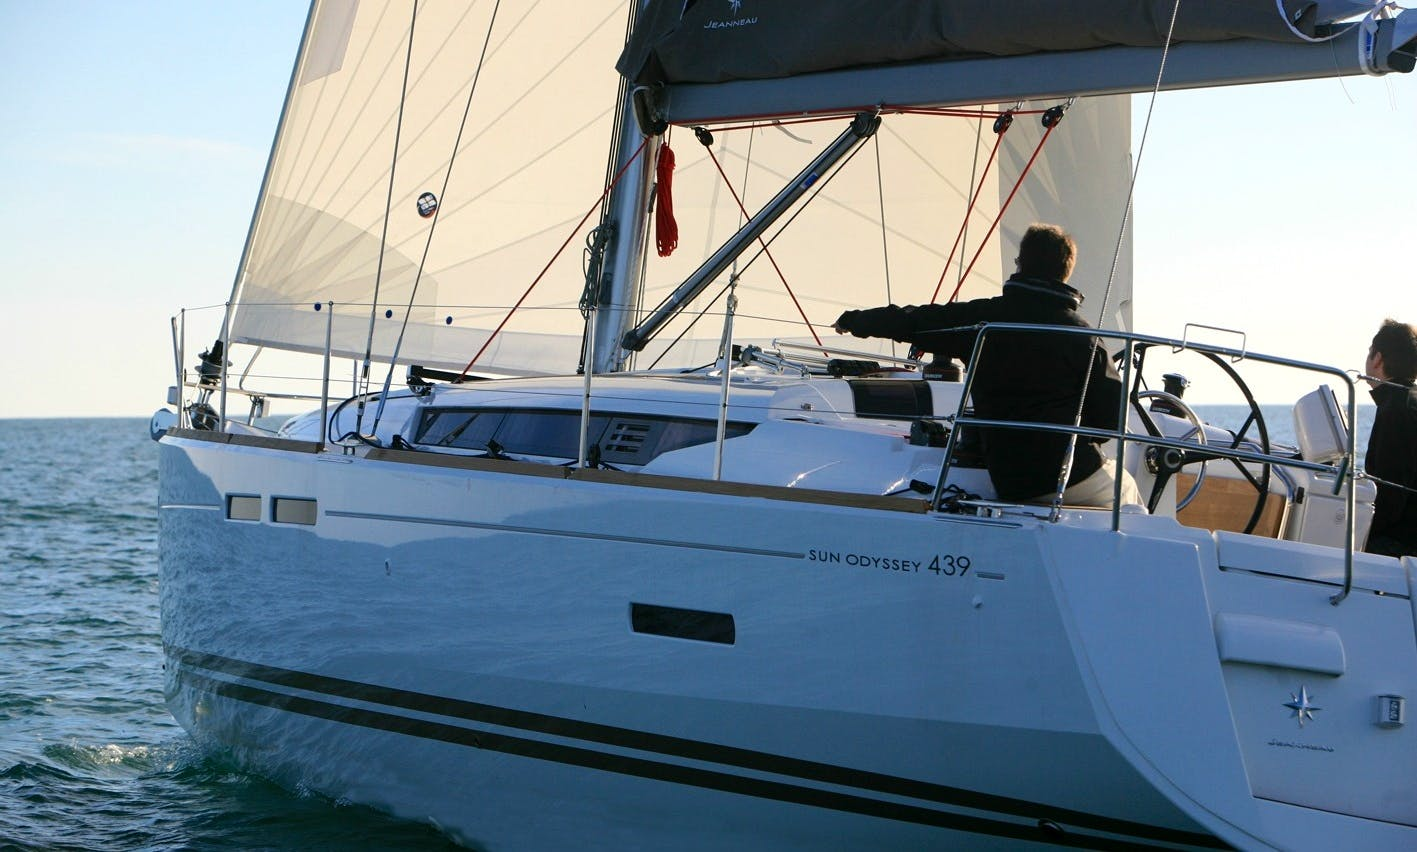 Experience Sun Odyssey 439 Sailing Yacht in Kotor, Montenegro